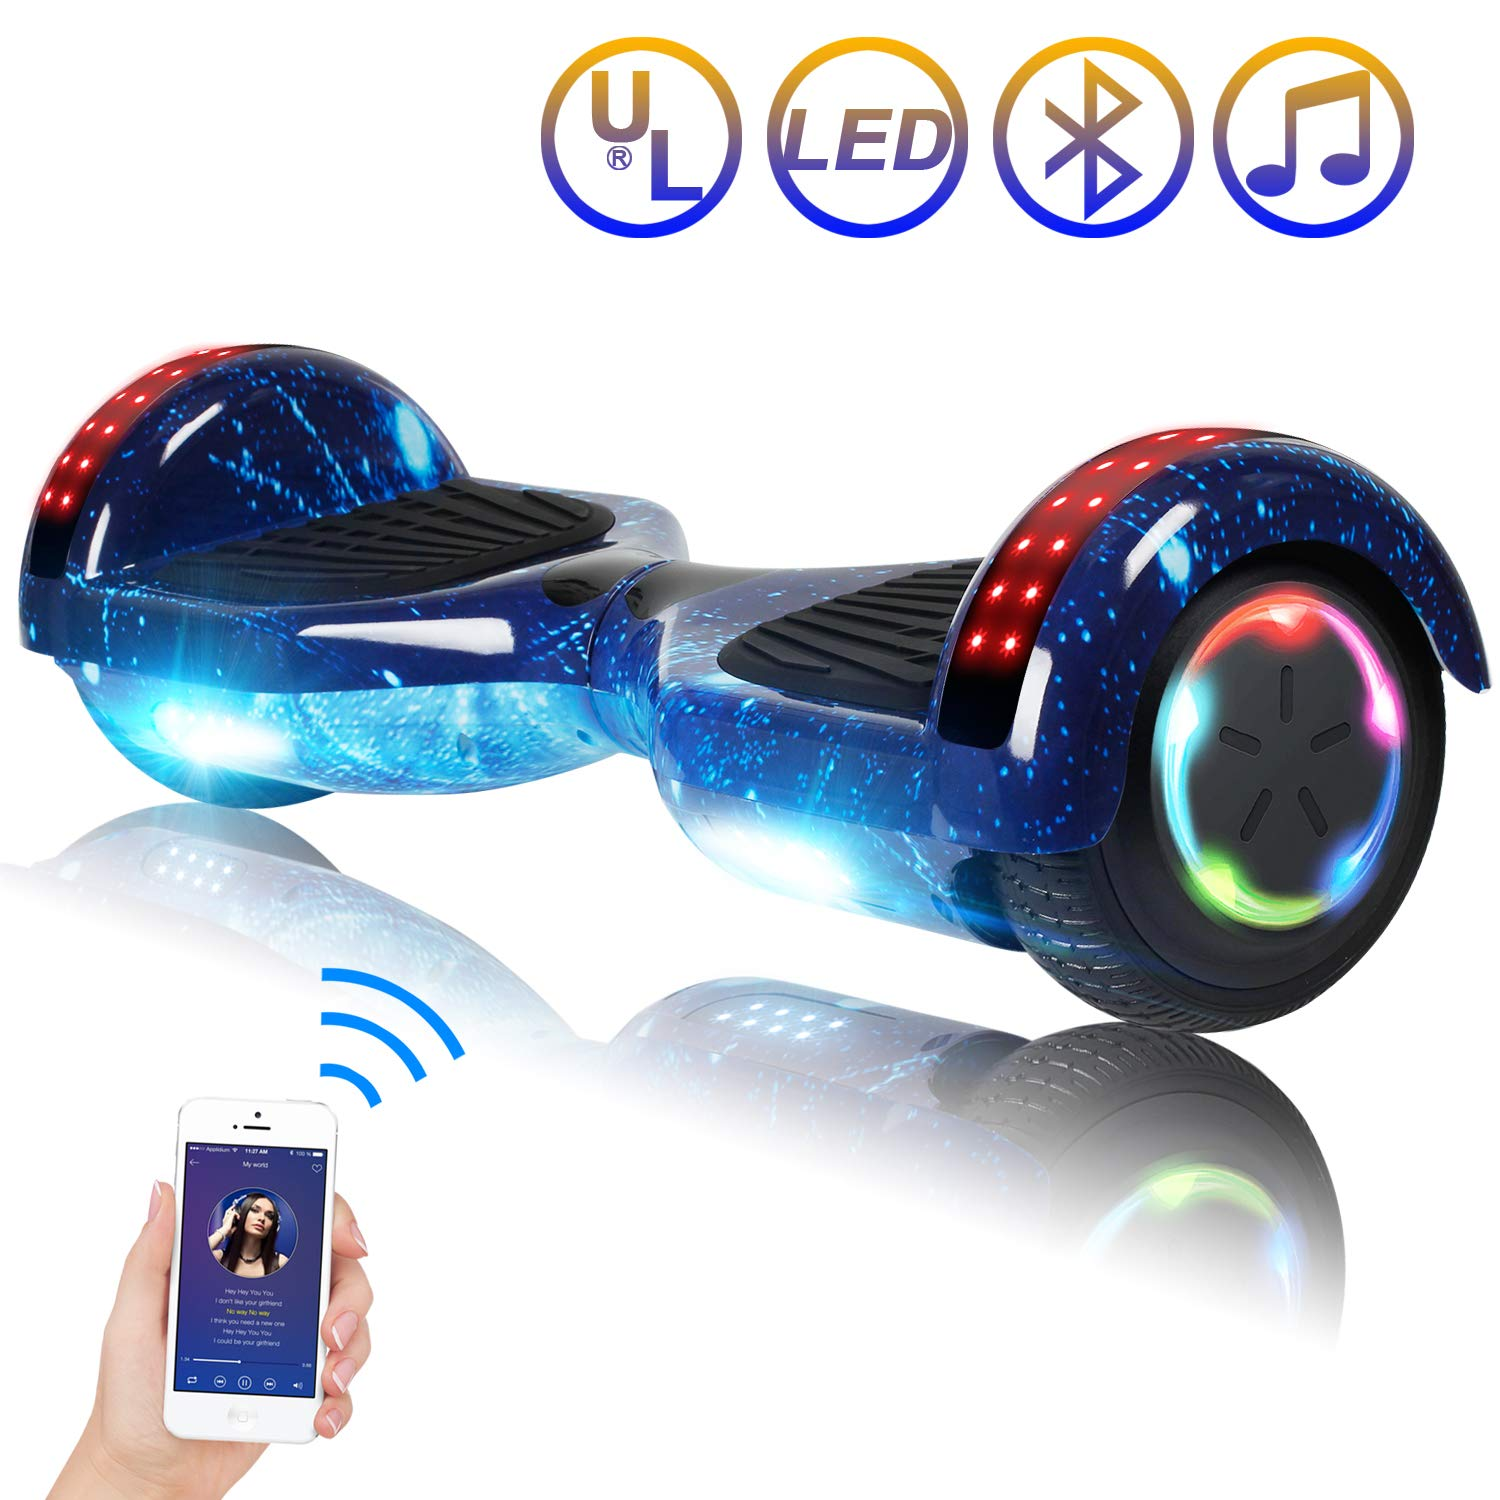 Hoverboard Self Balancing Scooter 6.5'' Two-Wheel Self Balancing Hoverboard with Bluetooth Speaker and LED Lights Electric Scooter for Adult Kids Gift UL 2272 Certified Fun Edition - Starry Sky